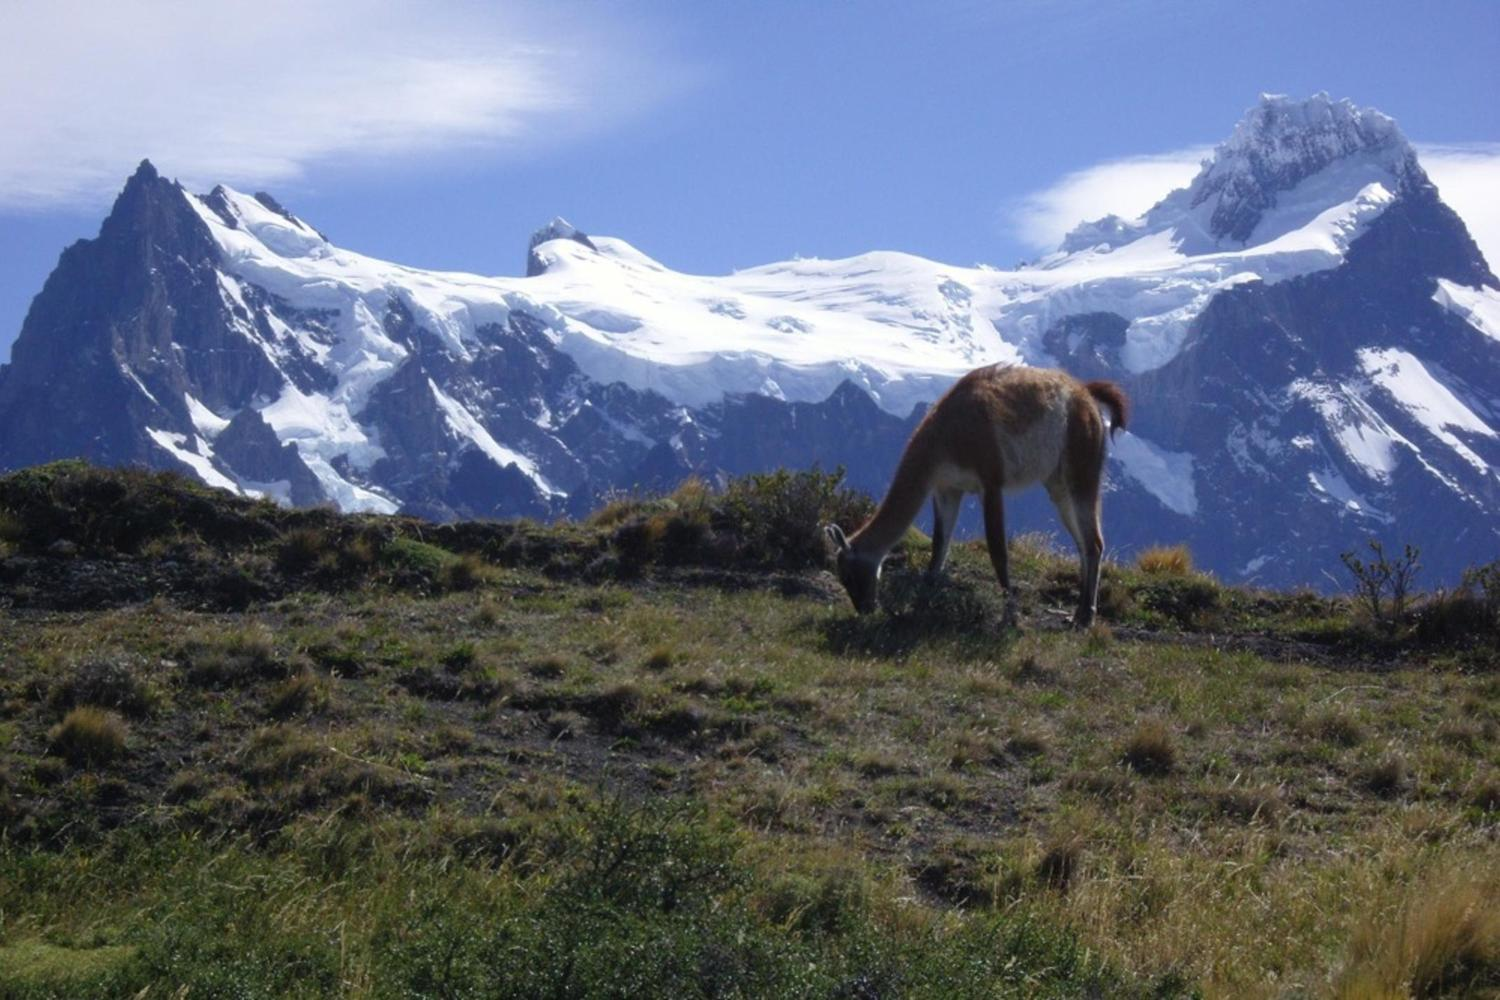 Guanaco grazing in front of the Torres del Paine massif